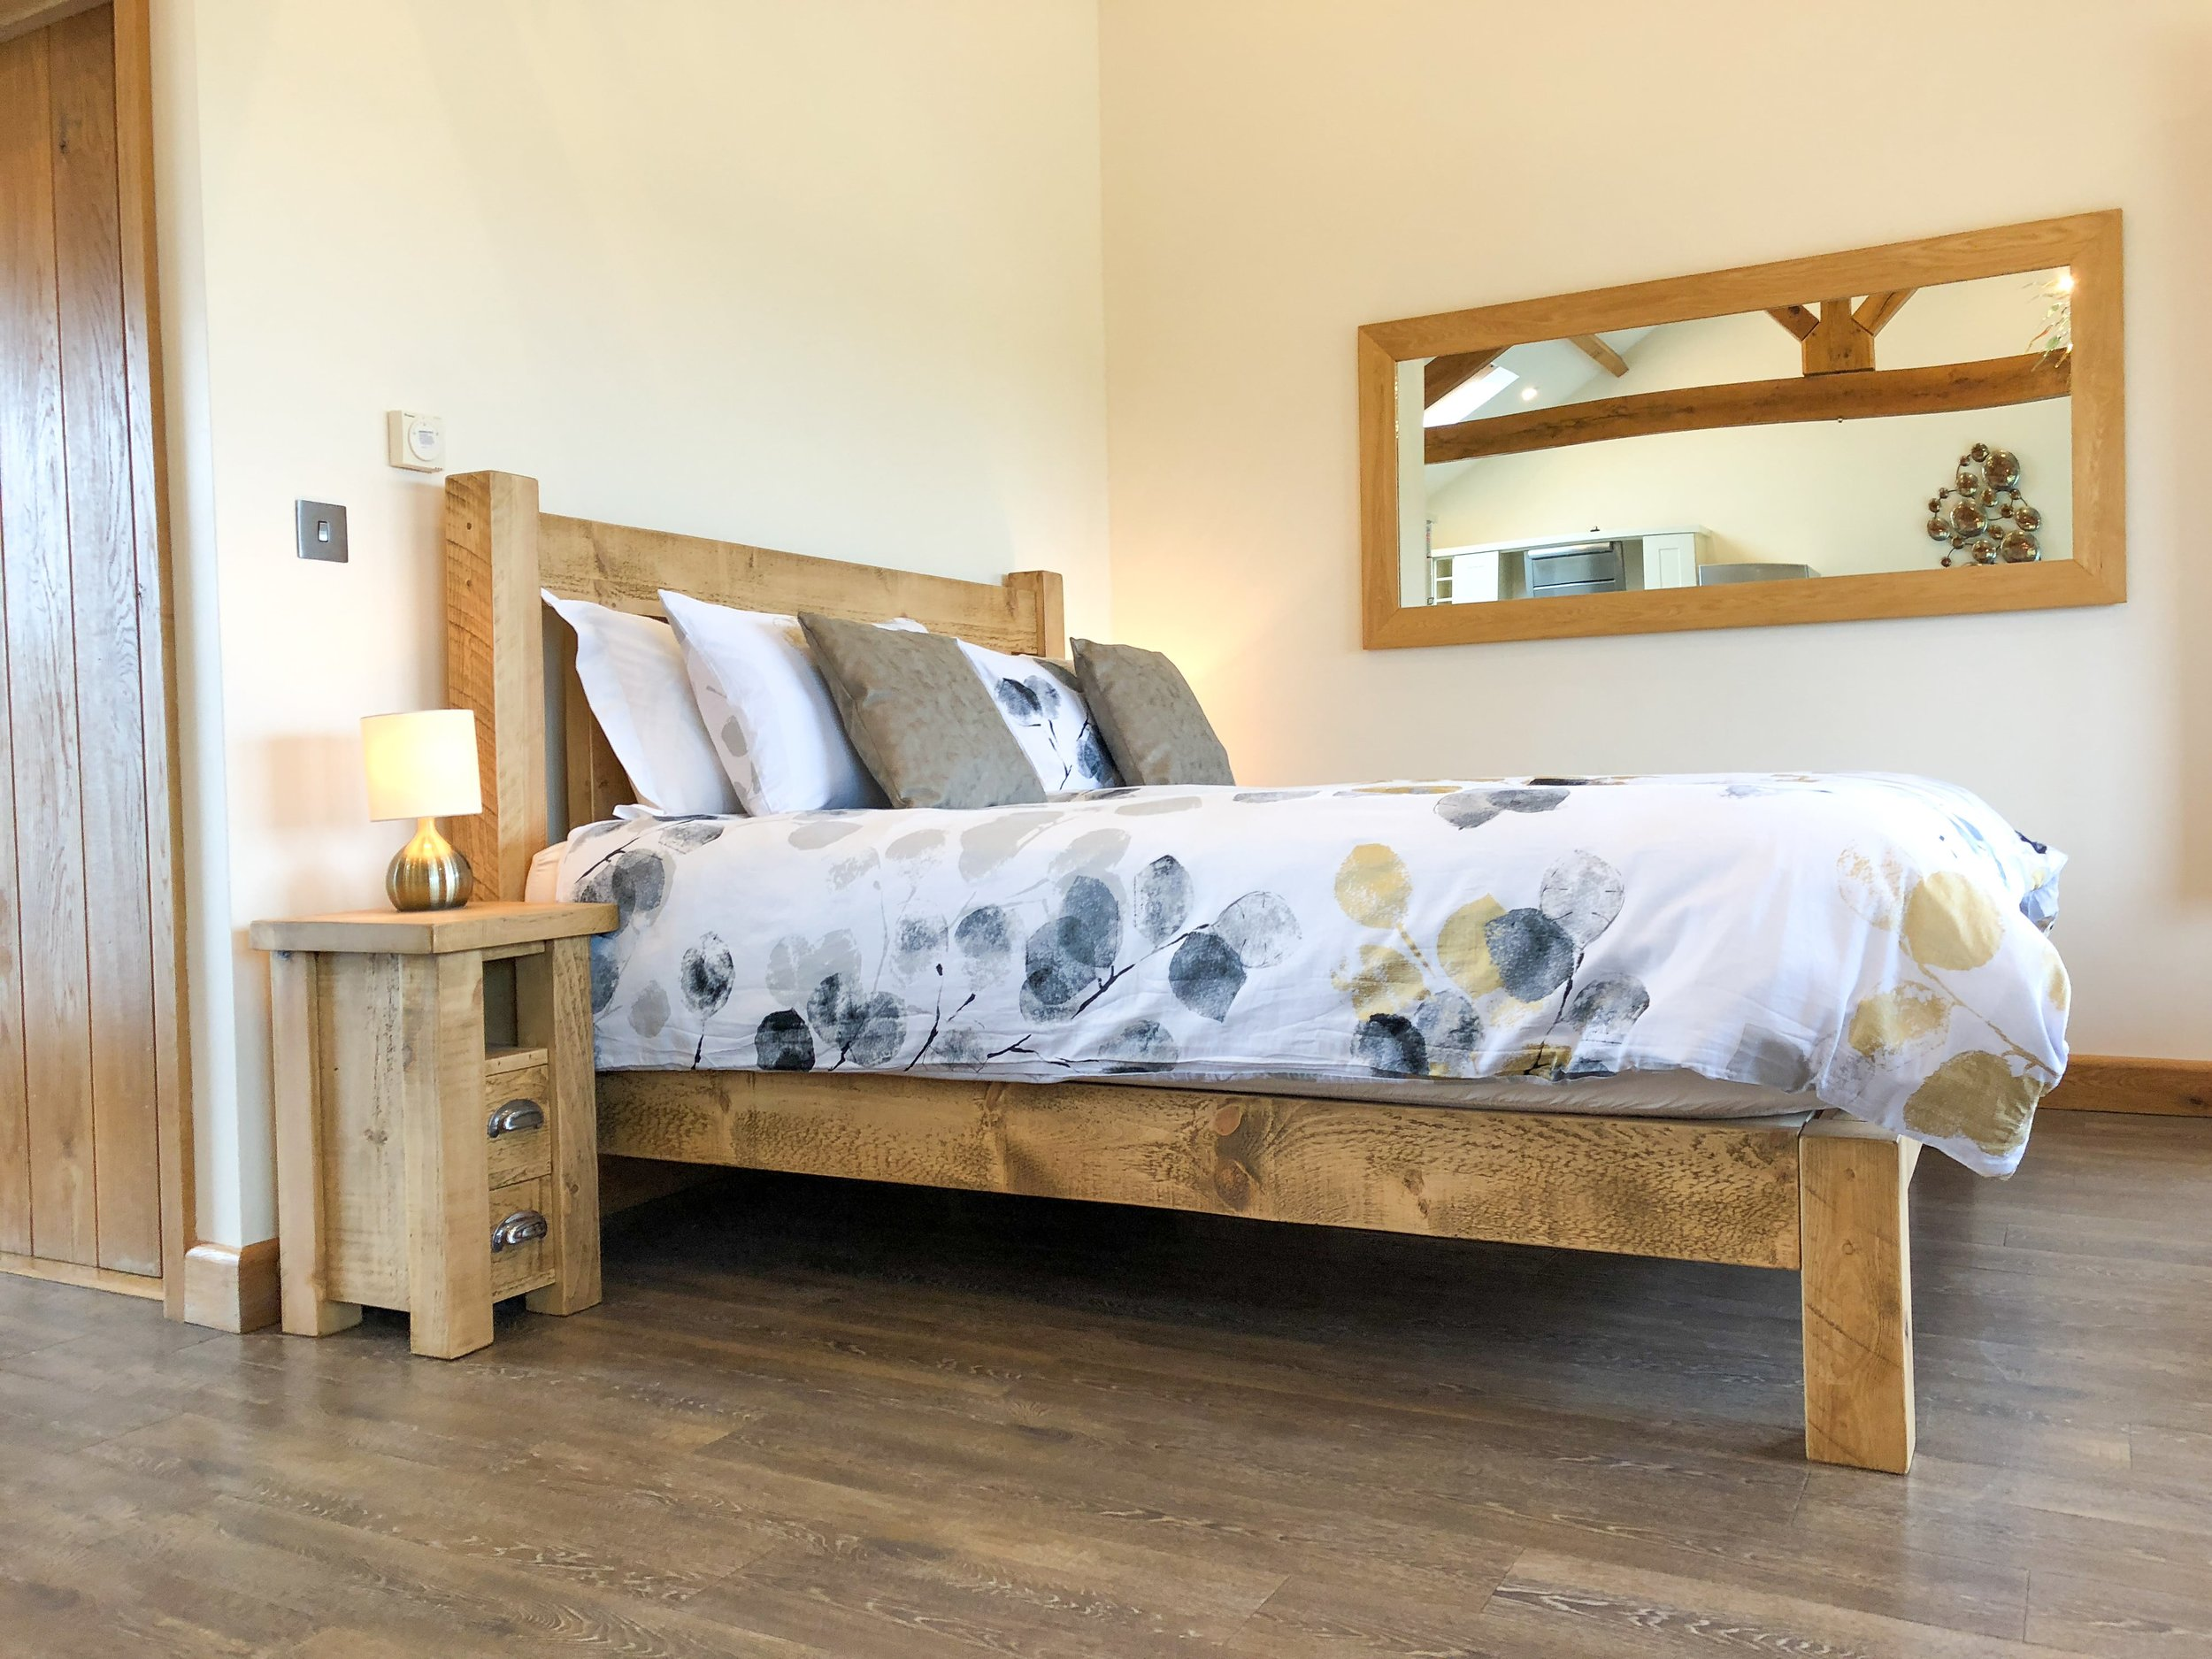 Super-king size chunky plank bed with memory foam mattress